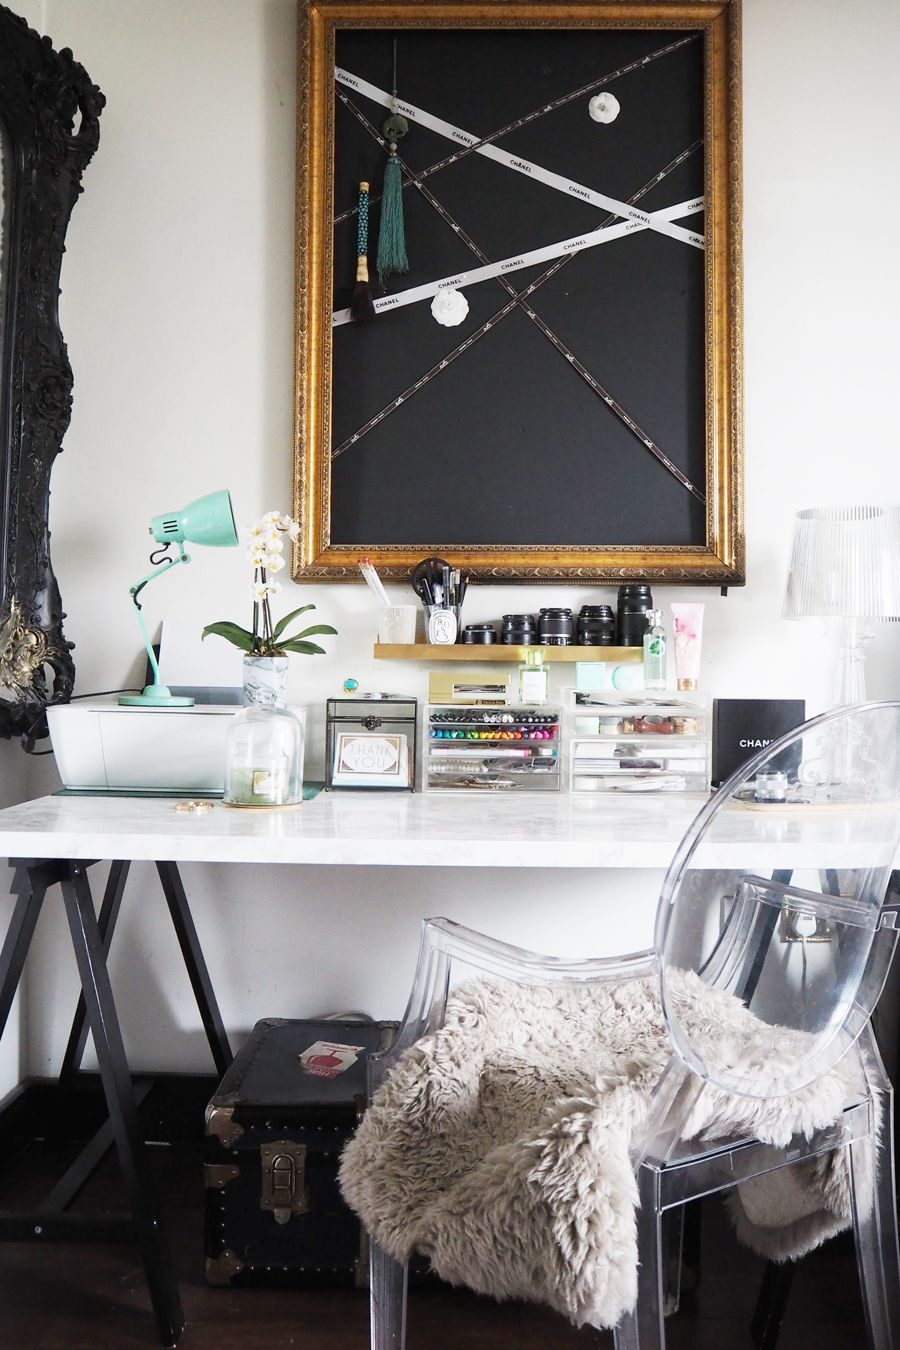 New Year, New Home, New You: Decorating ideas for your home vanity ...